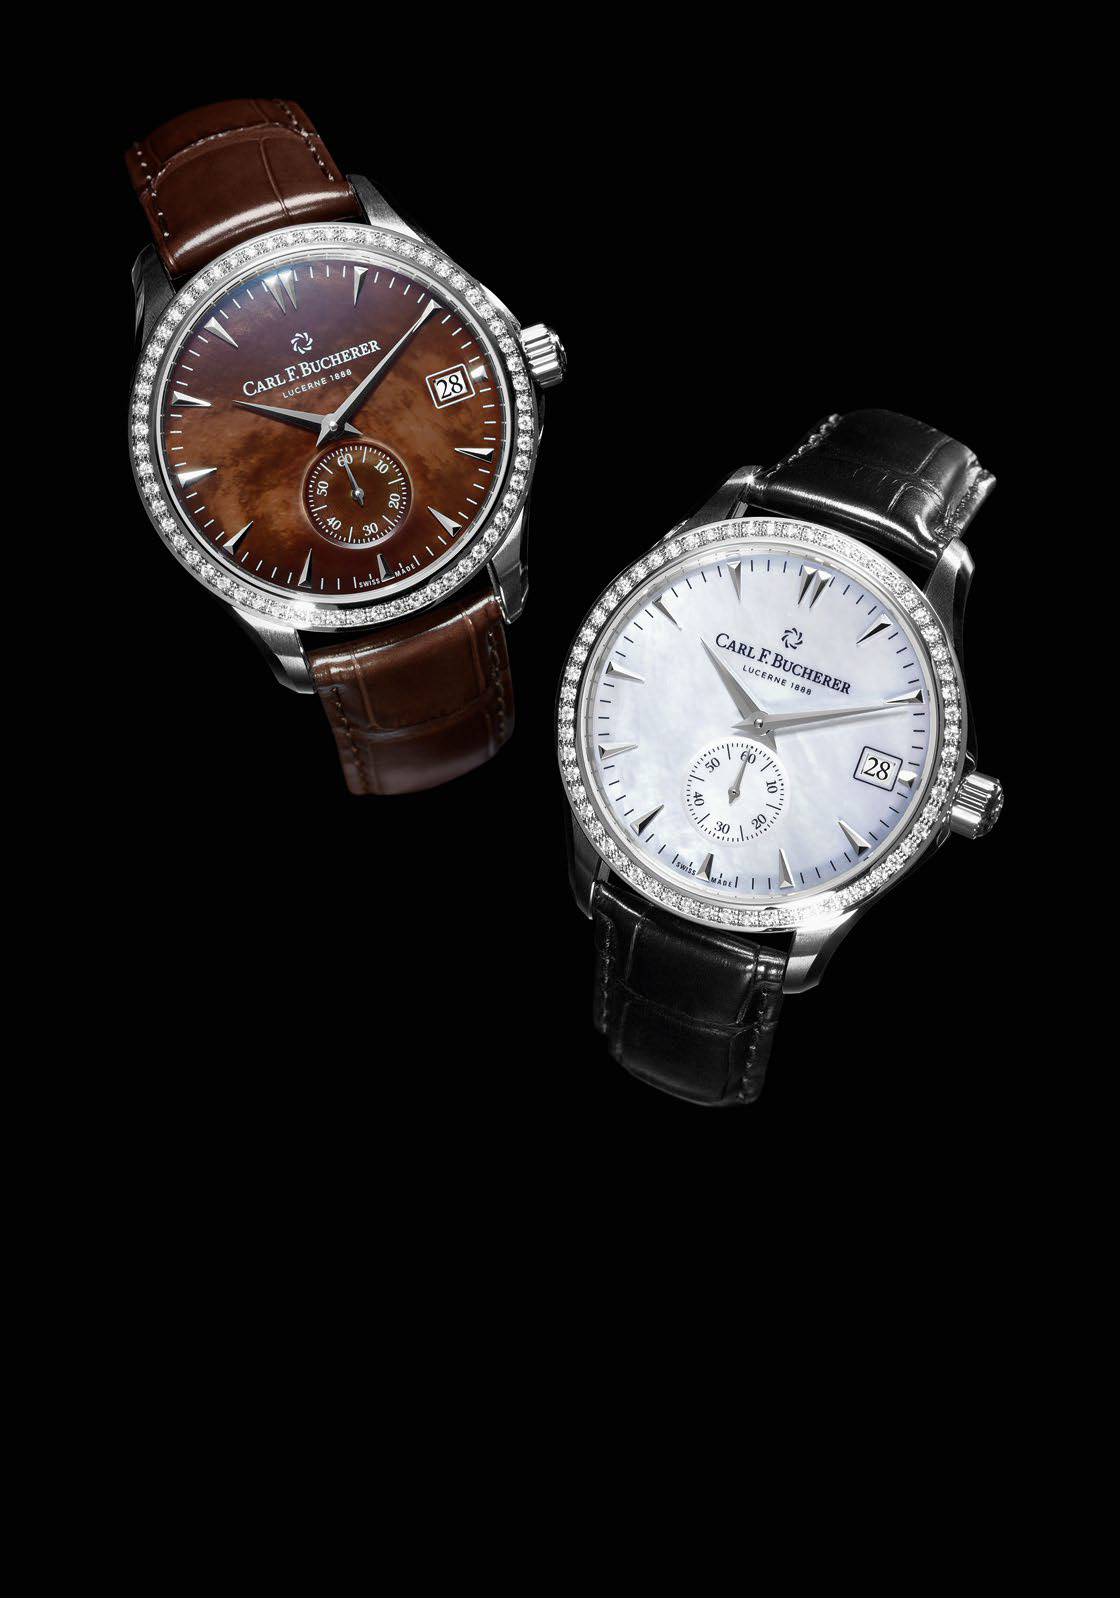 Carl-F.-Bucherer